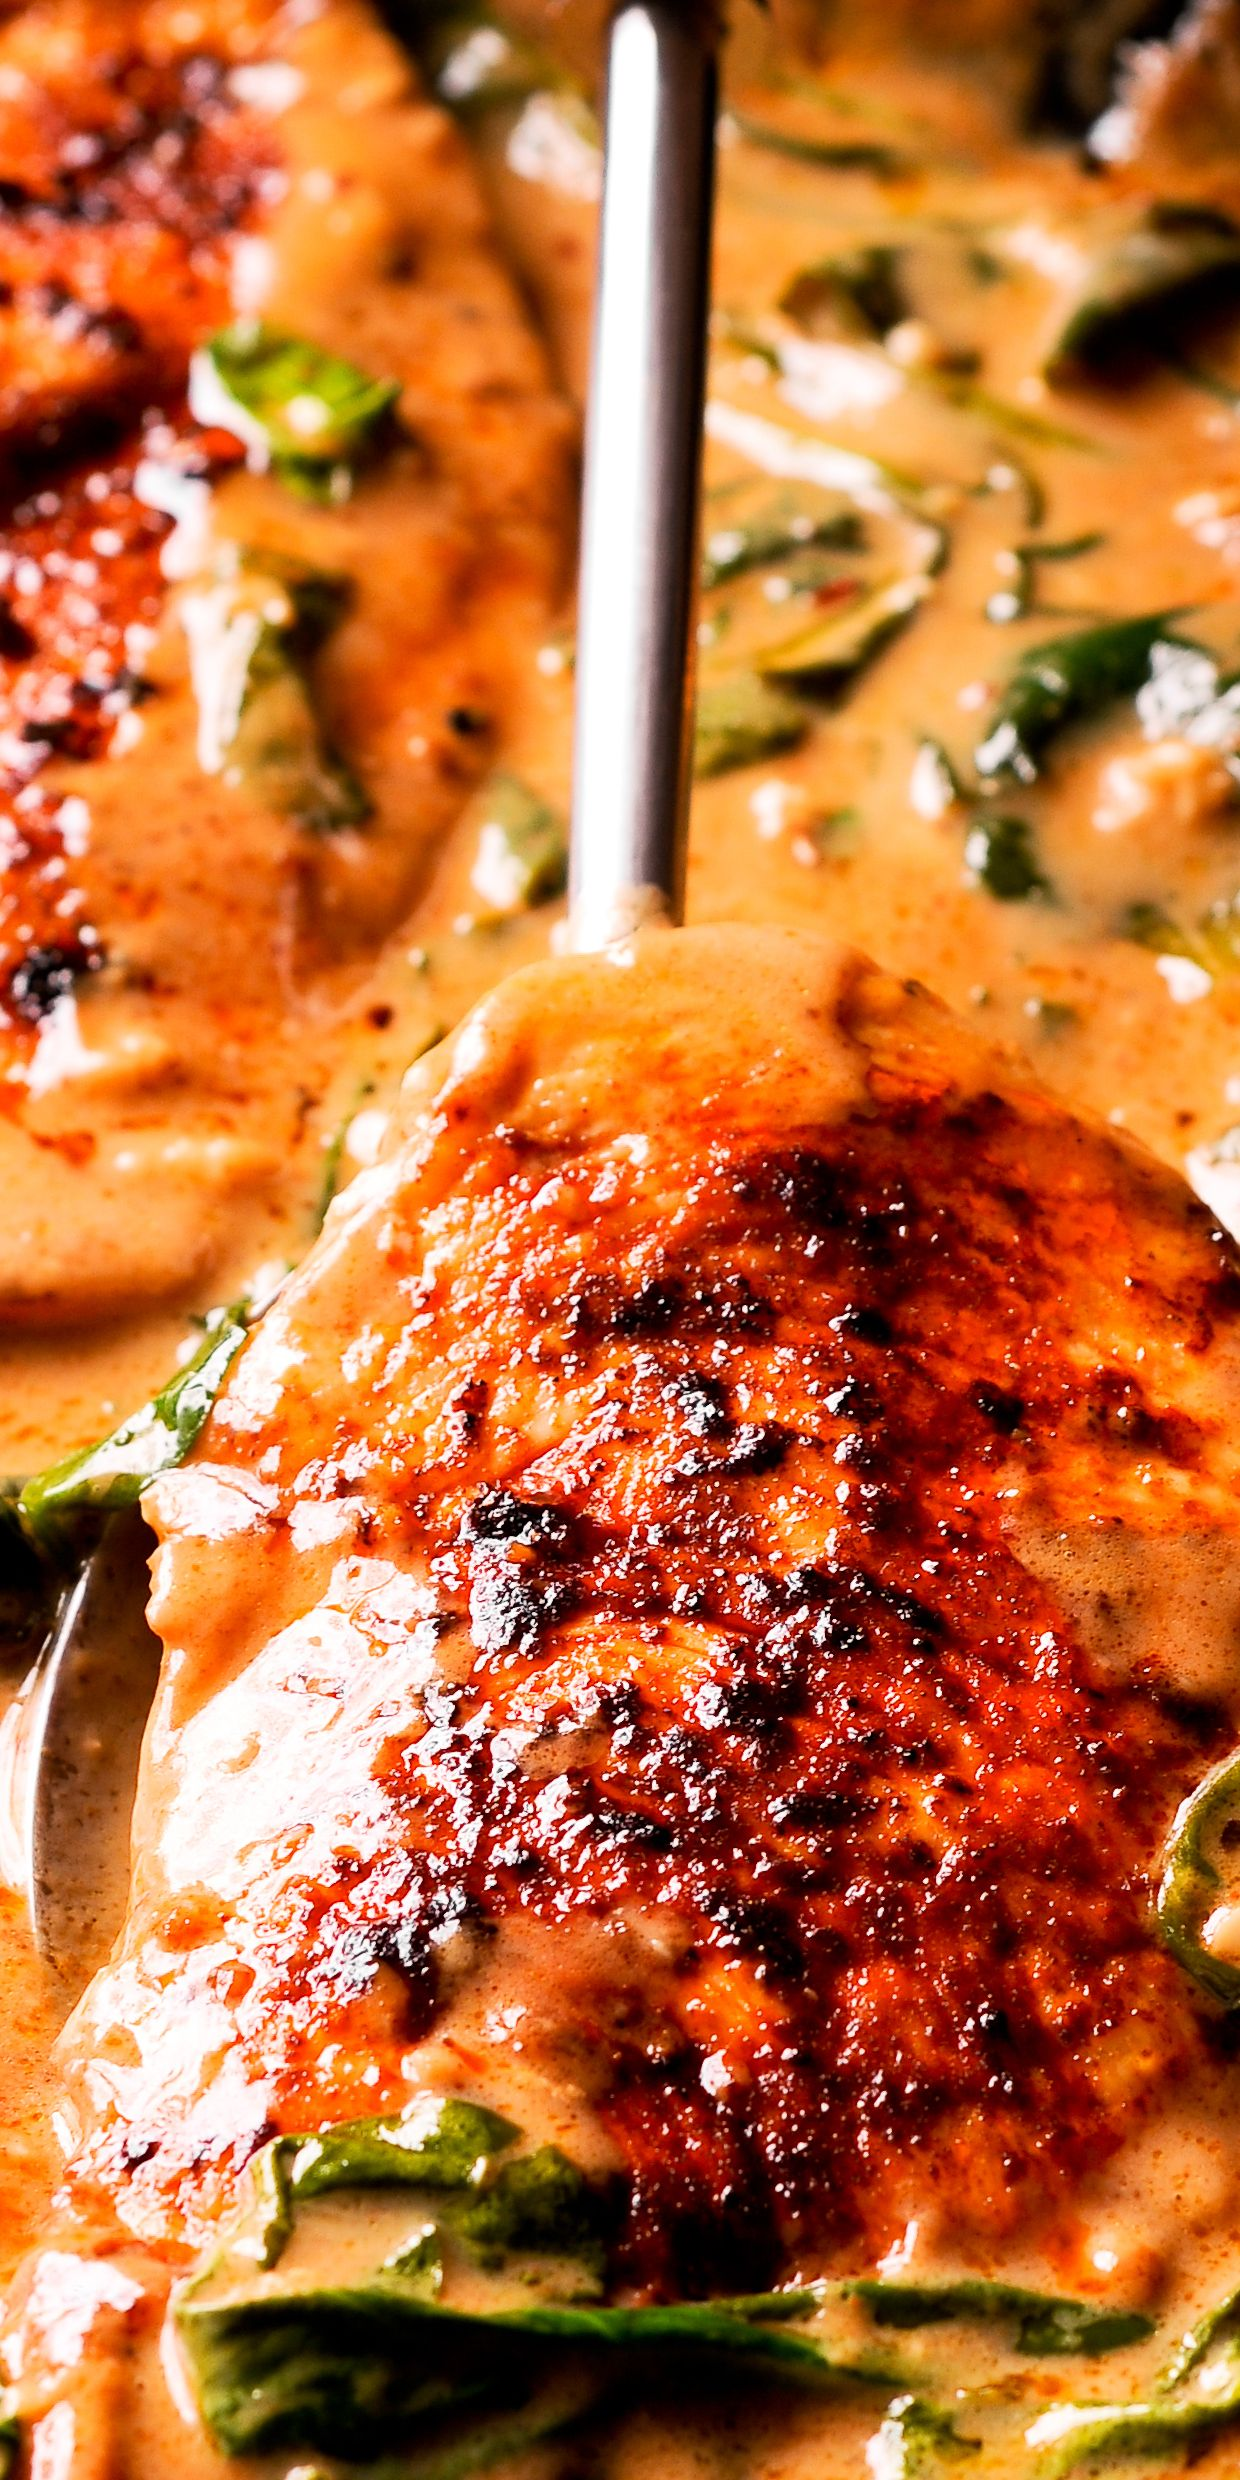 Chicken And Spinach In Creamy Paprika Sauce Paprika Sauce Chicken Recipes Spinach